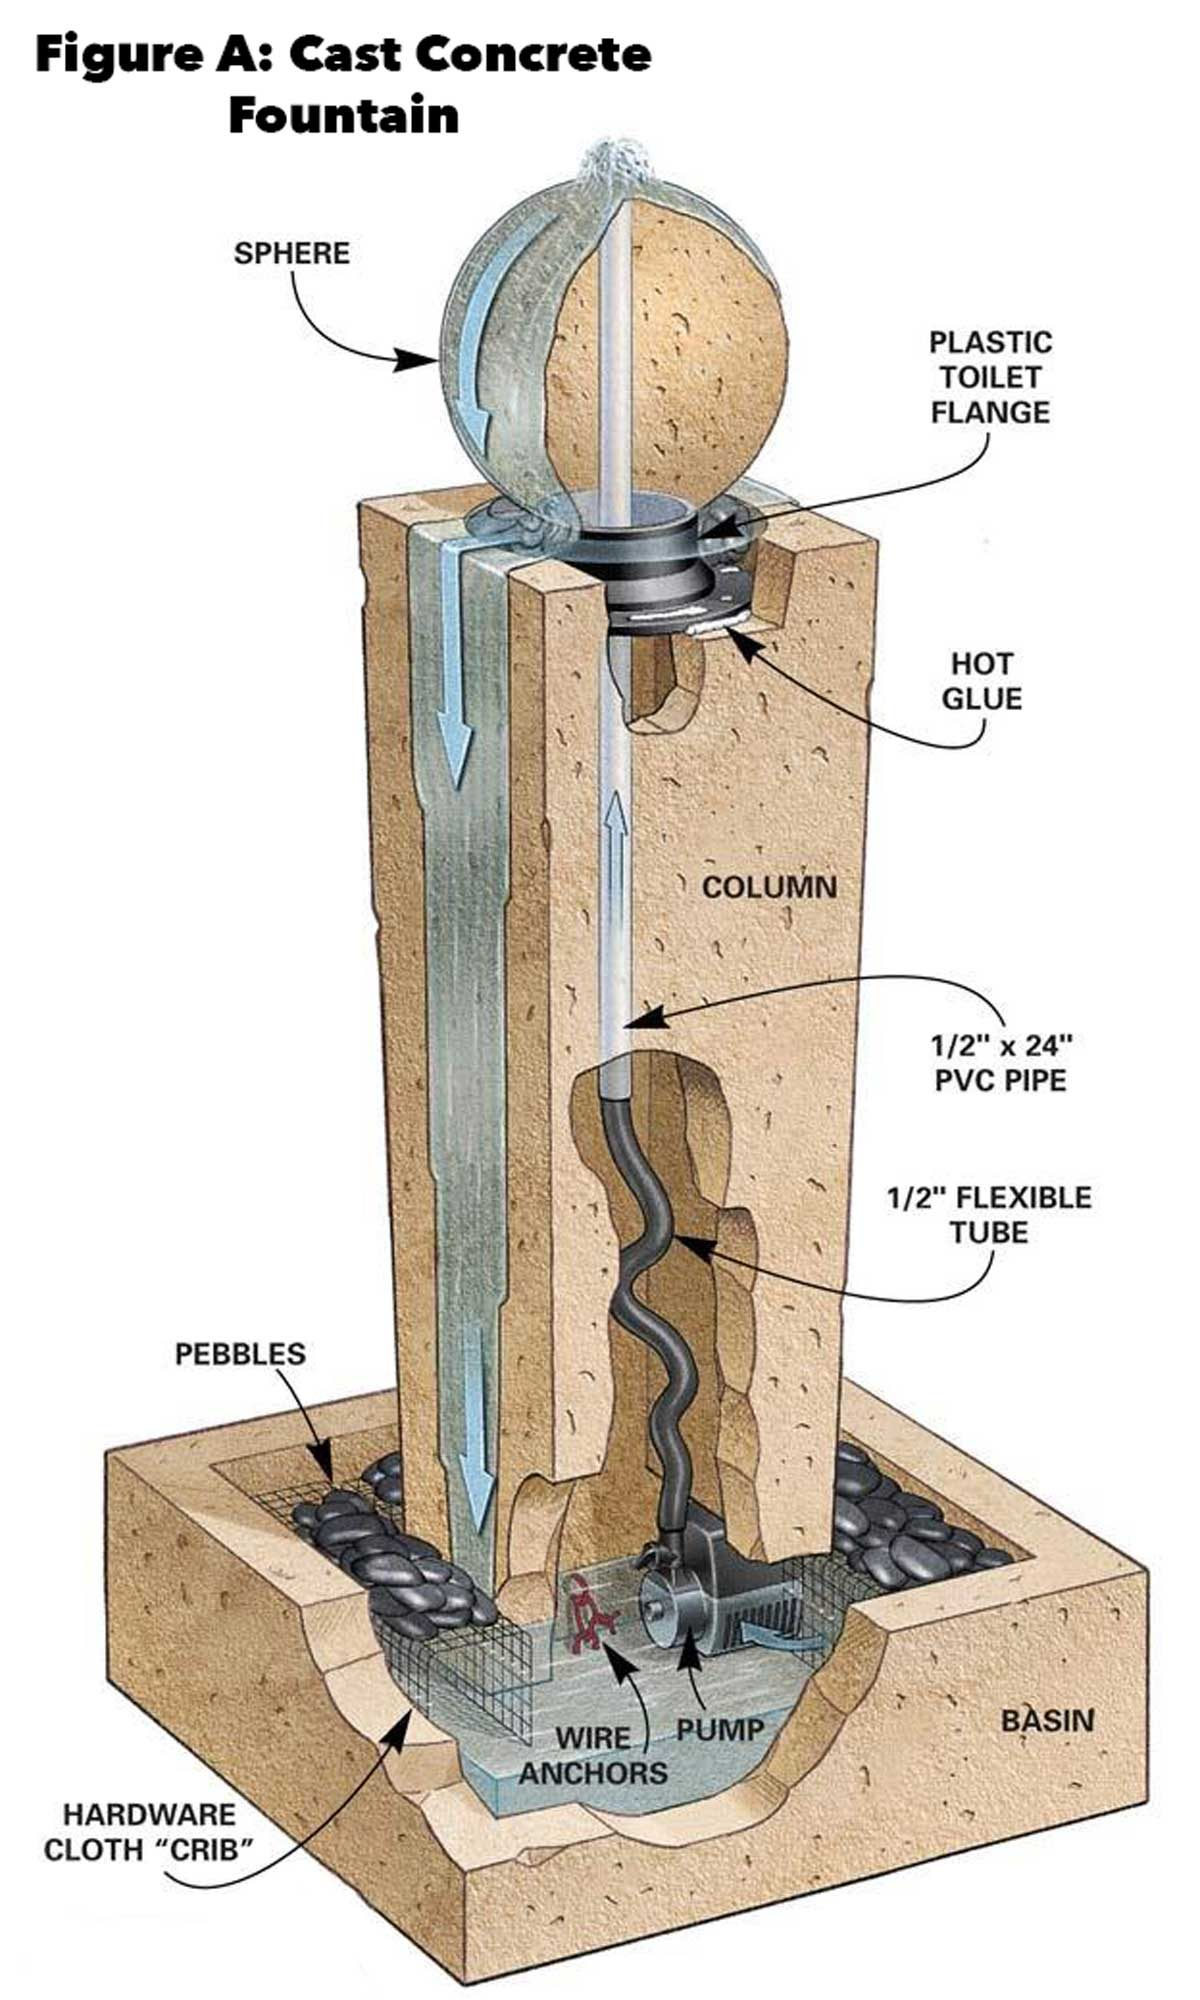 Concrete Tube Forms How To Cast Concrete Fountains The Family Handyman